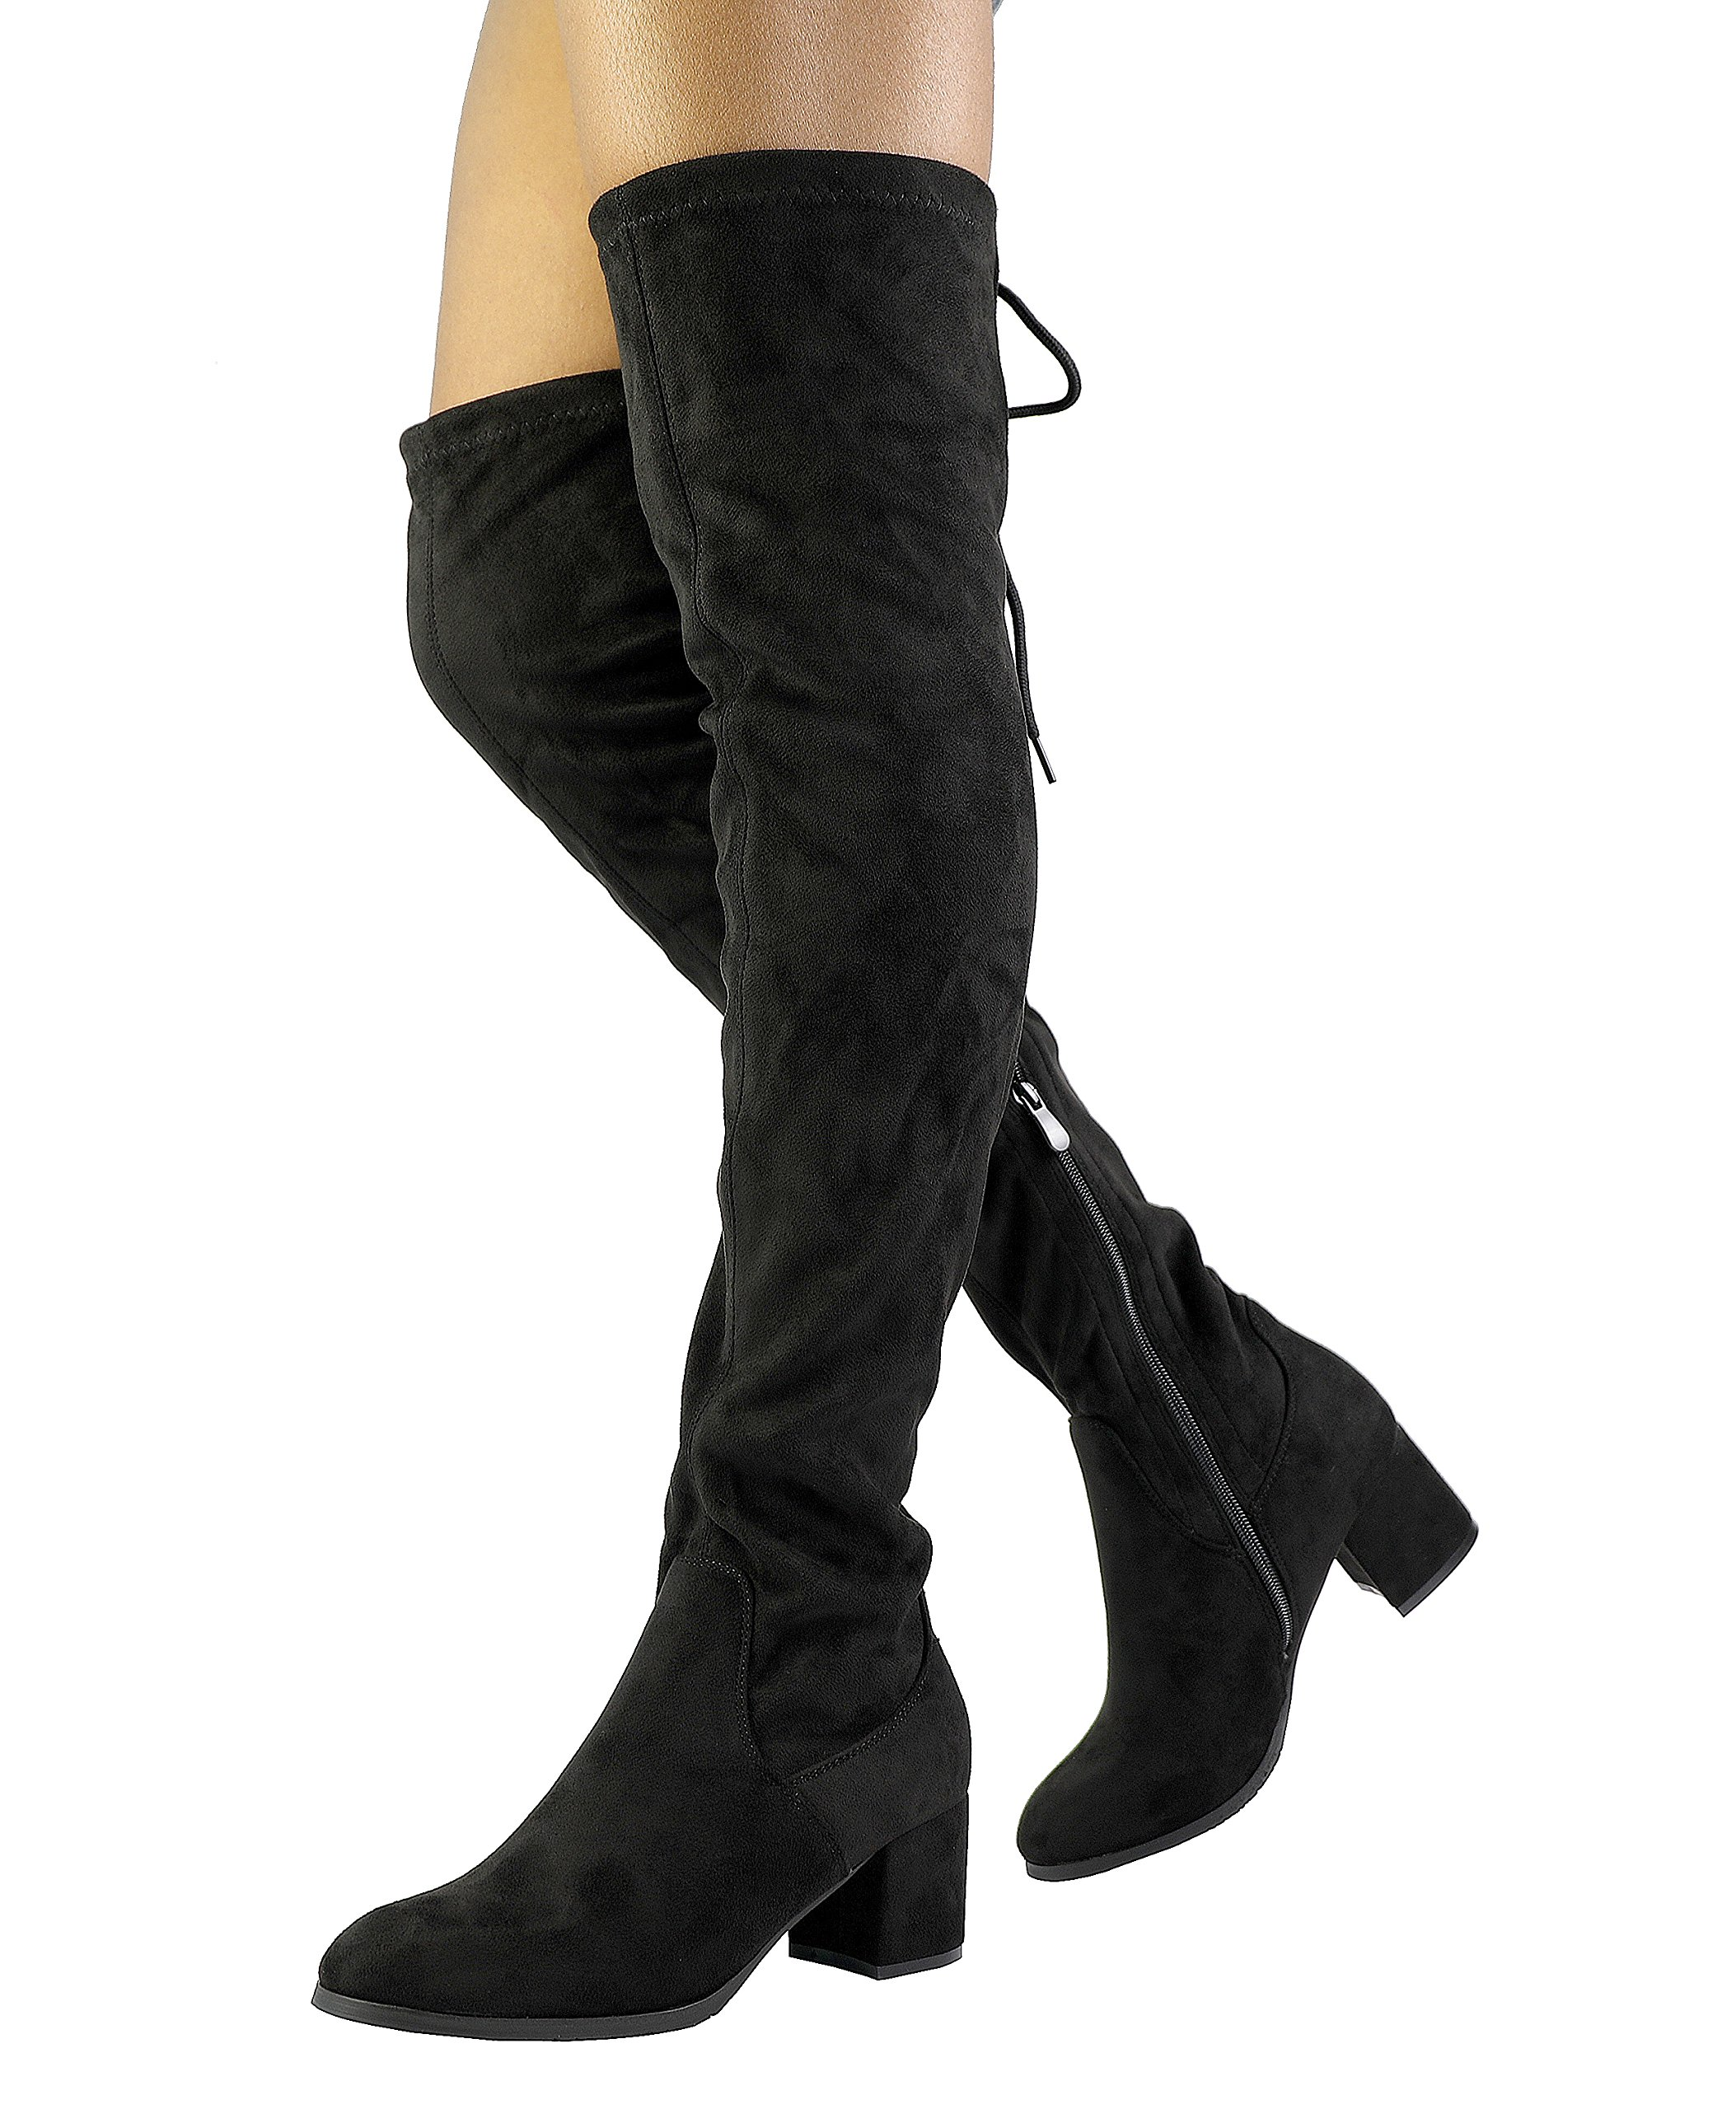 Best Rated In Womens Over The Knee Boots Helpful Customer Reviews Heels Wanita Suede 274 Dream Pairs Thigh High Low Block Heel Product Image